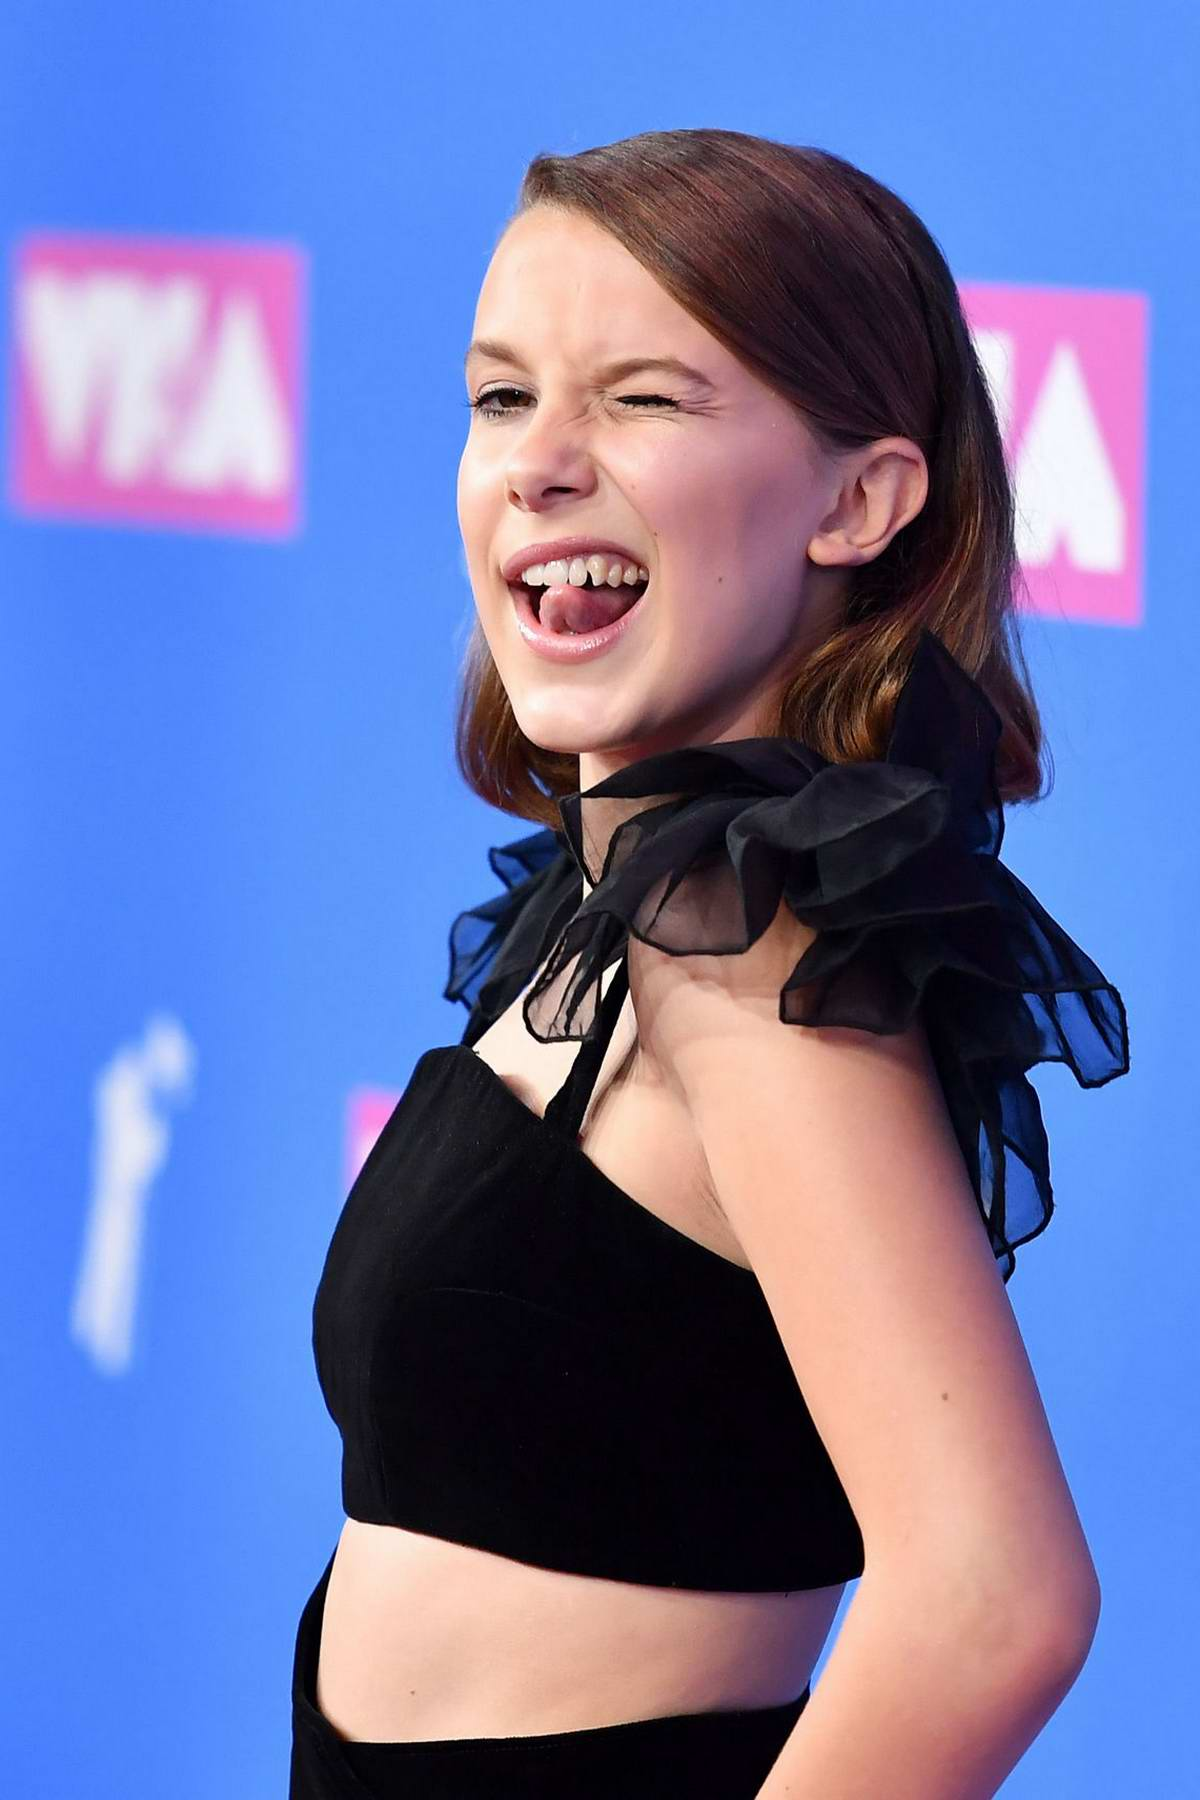 Millie Bobby Brown attends 2018 MTV Video Music Awards (MTV VMA 2018) at Radio City Music Hall in New York City